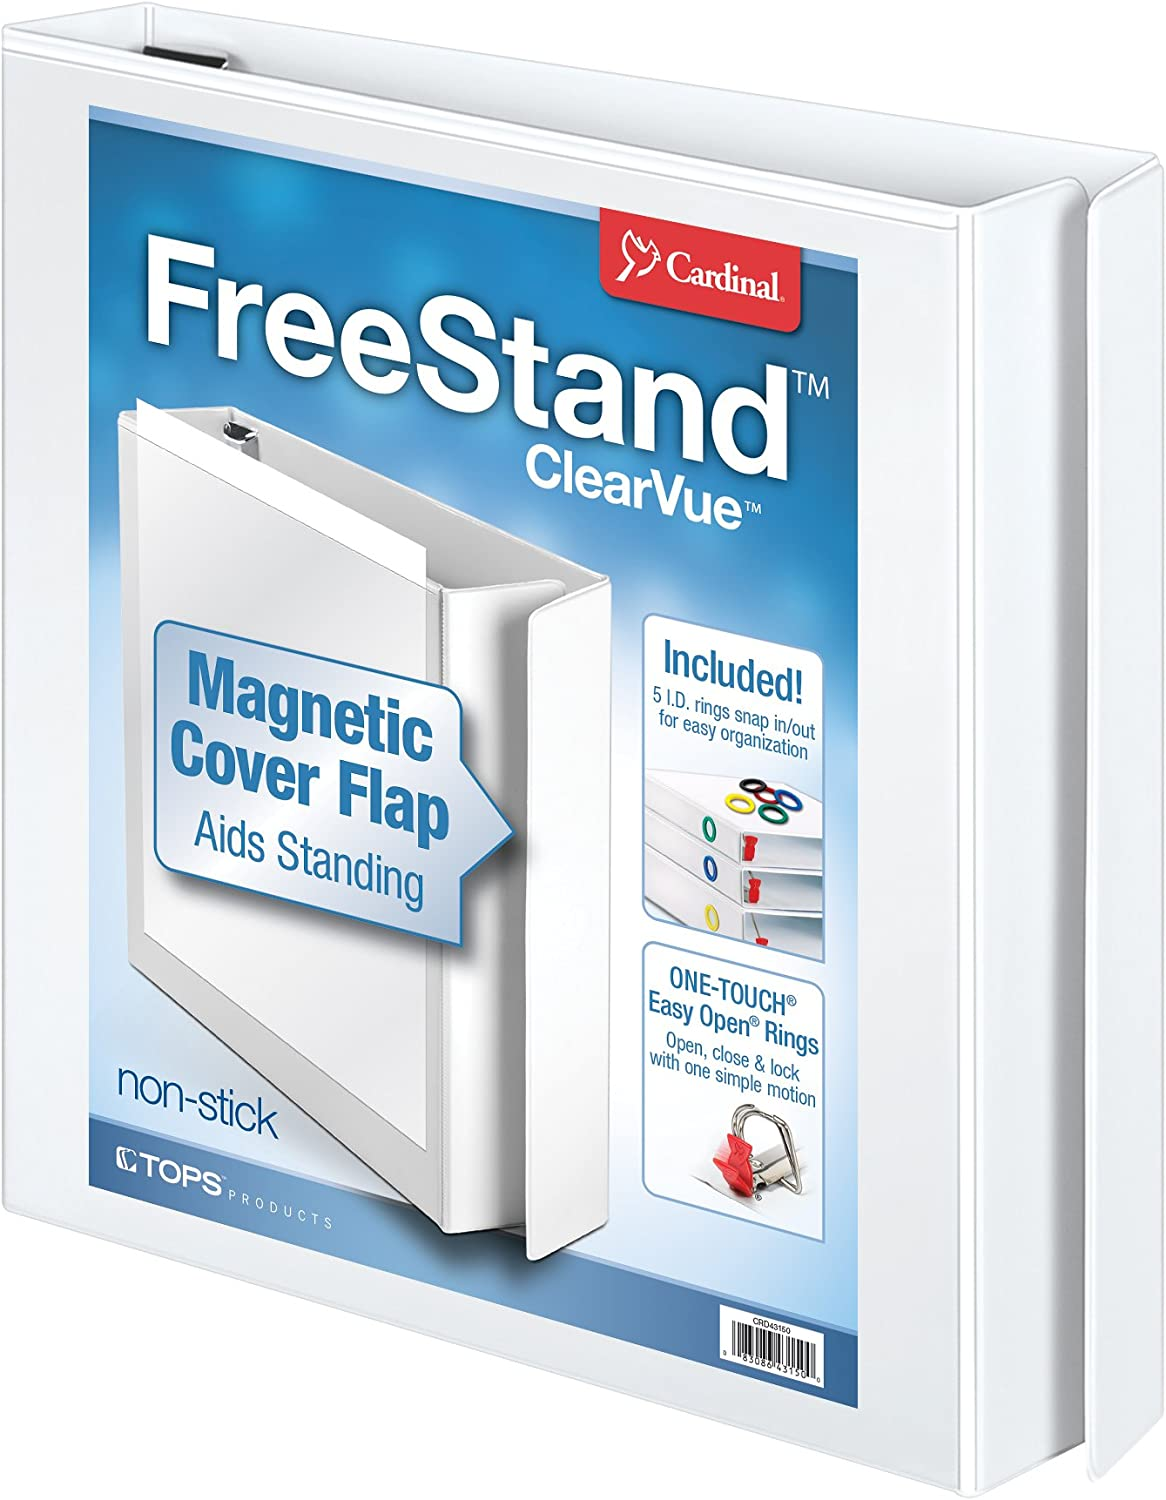 Cardinal 3 Ring Binder, 1 Inch FreeStand Binder with Magnetic Cover Flap, Shelf Pull and 5 Color-Coded Rings, ONE-TOUCH Easy Open Locking Slant-D Rings, Holds 250 Sheets, White